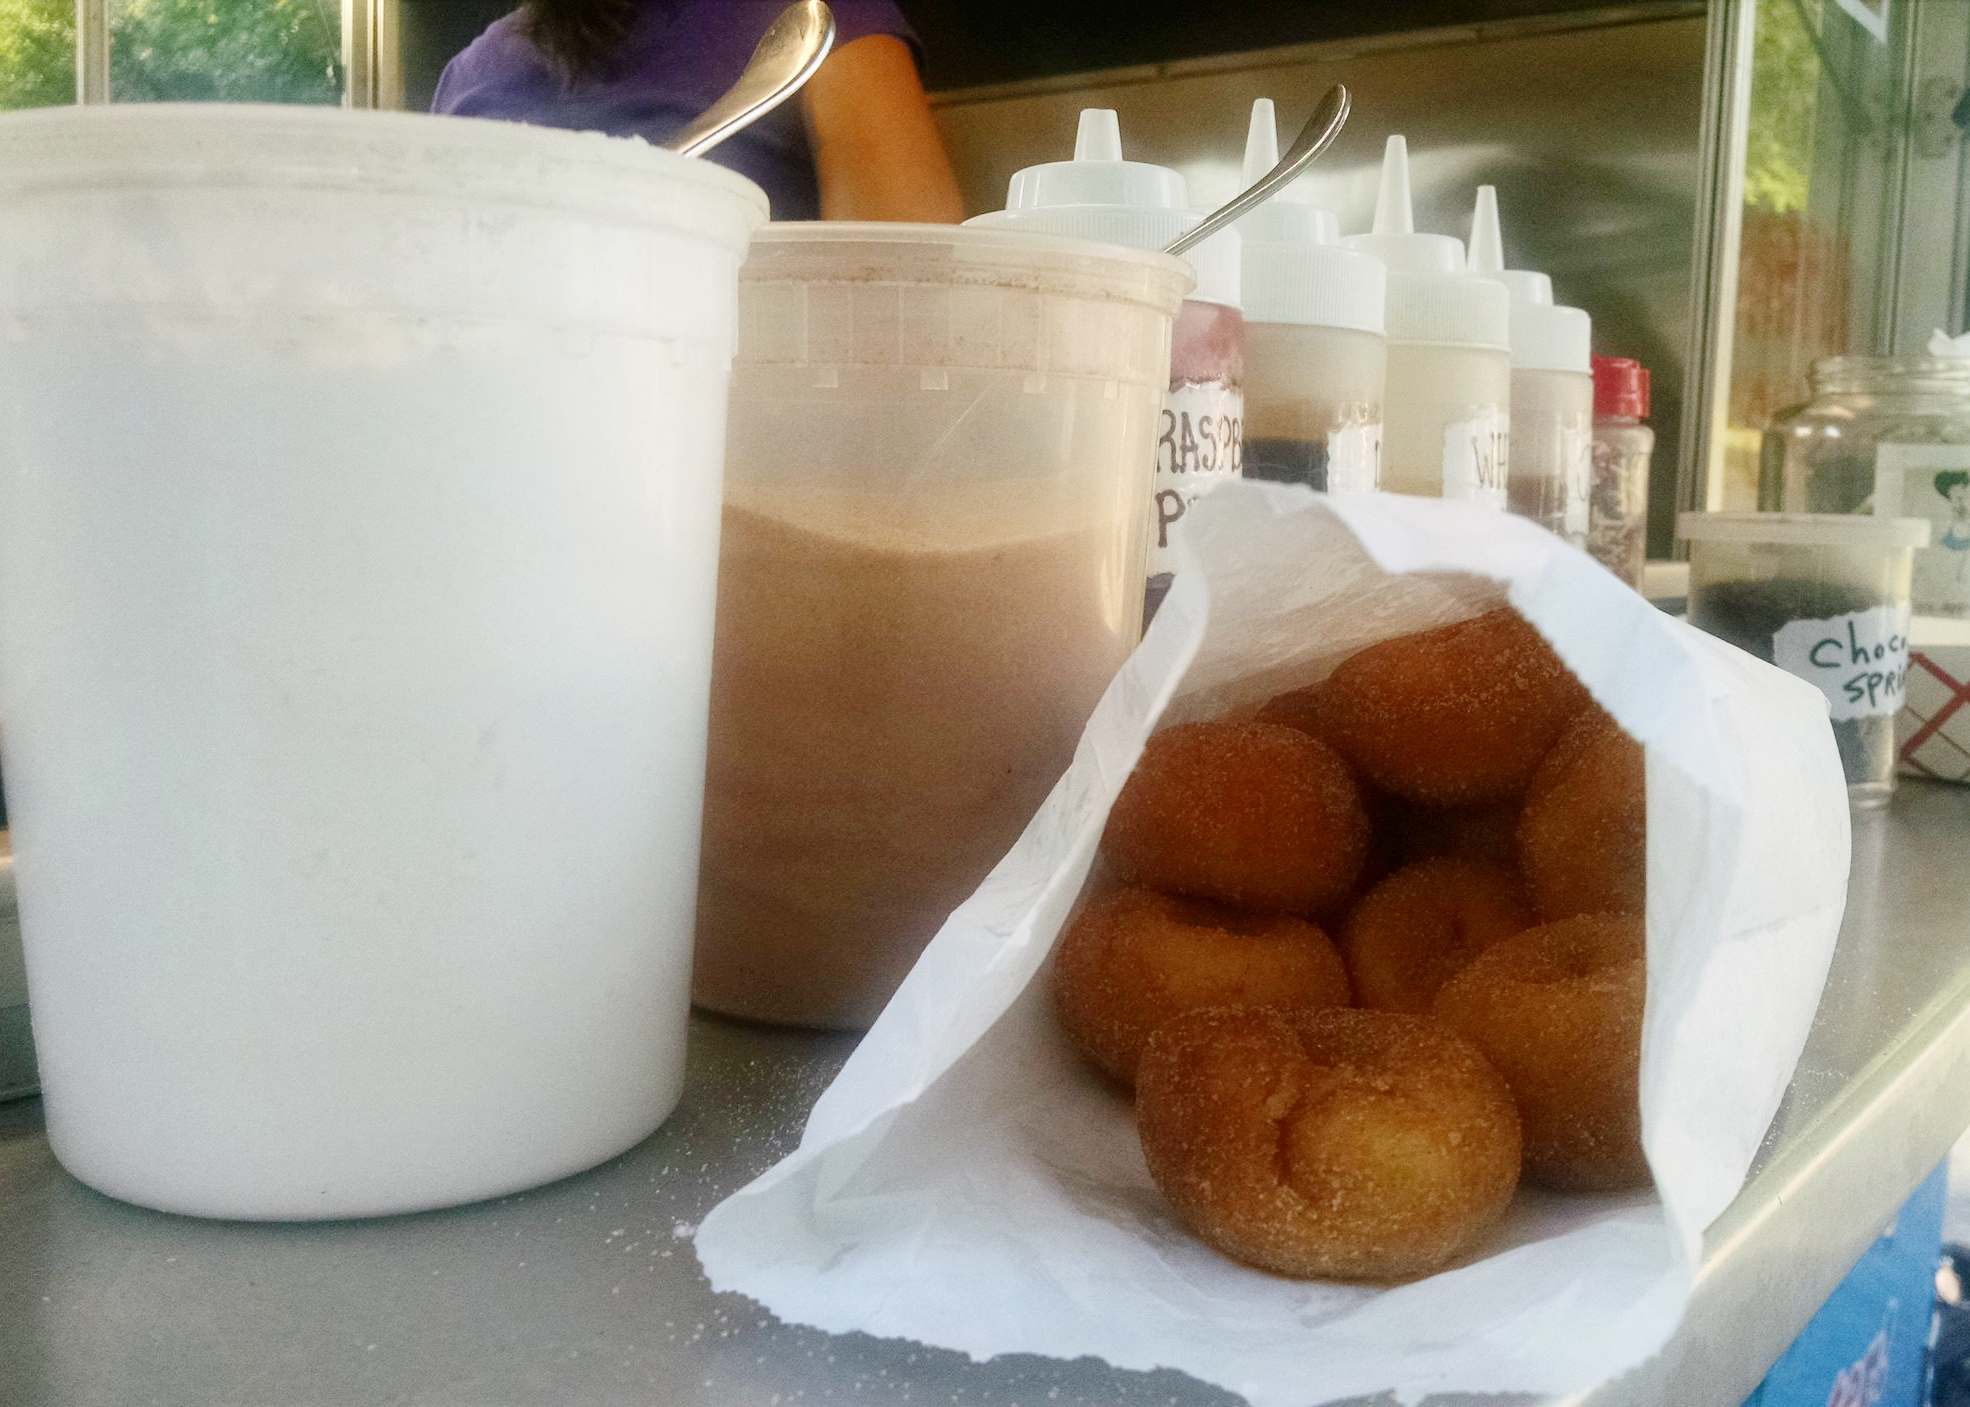 Highlight of the week had nothing to do with running.  Donuts fresh from the food truck at the farmer's market!